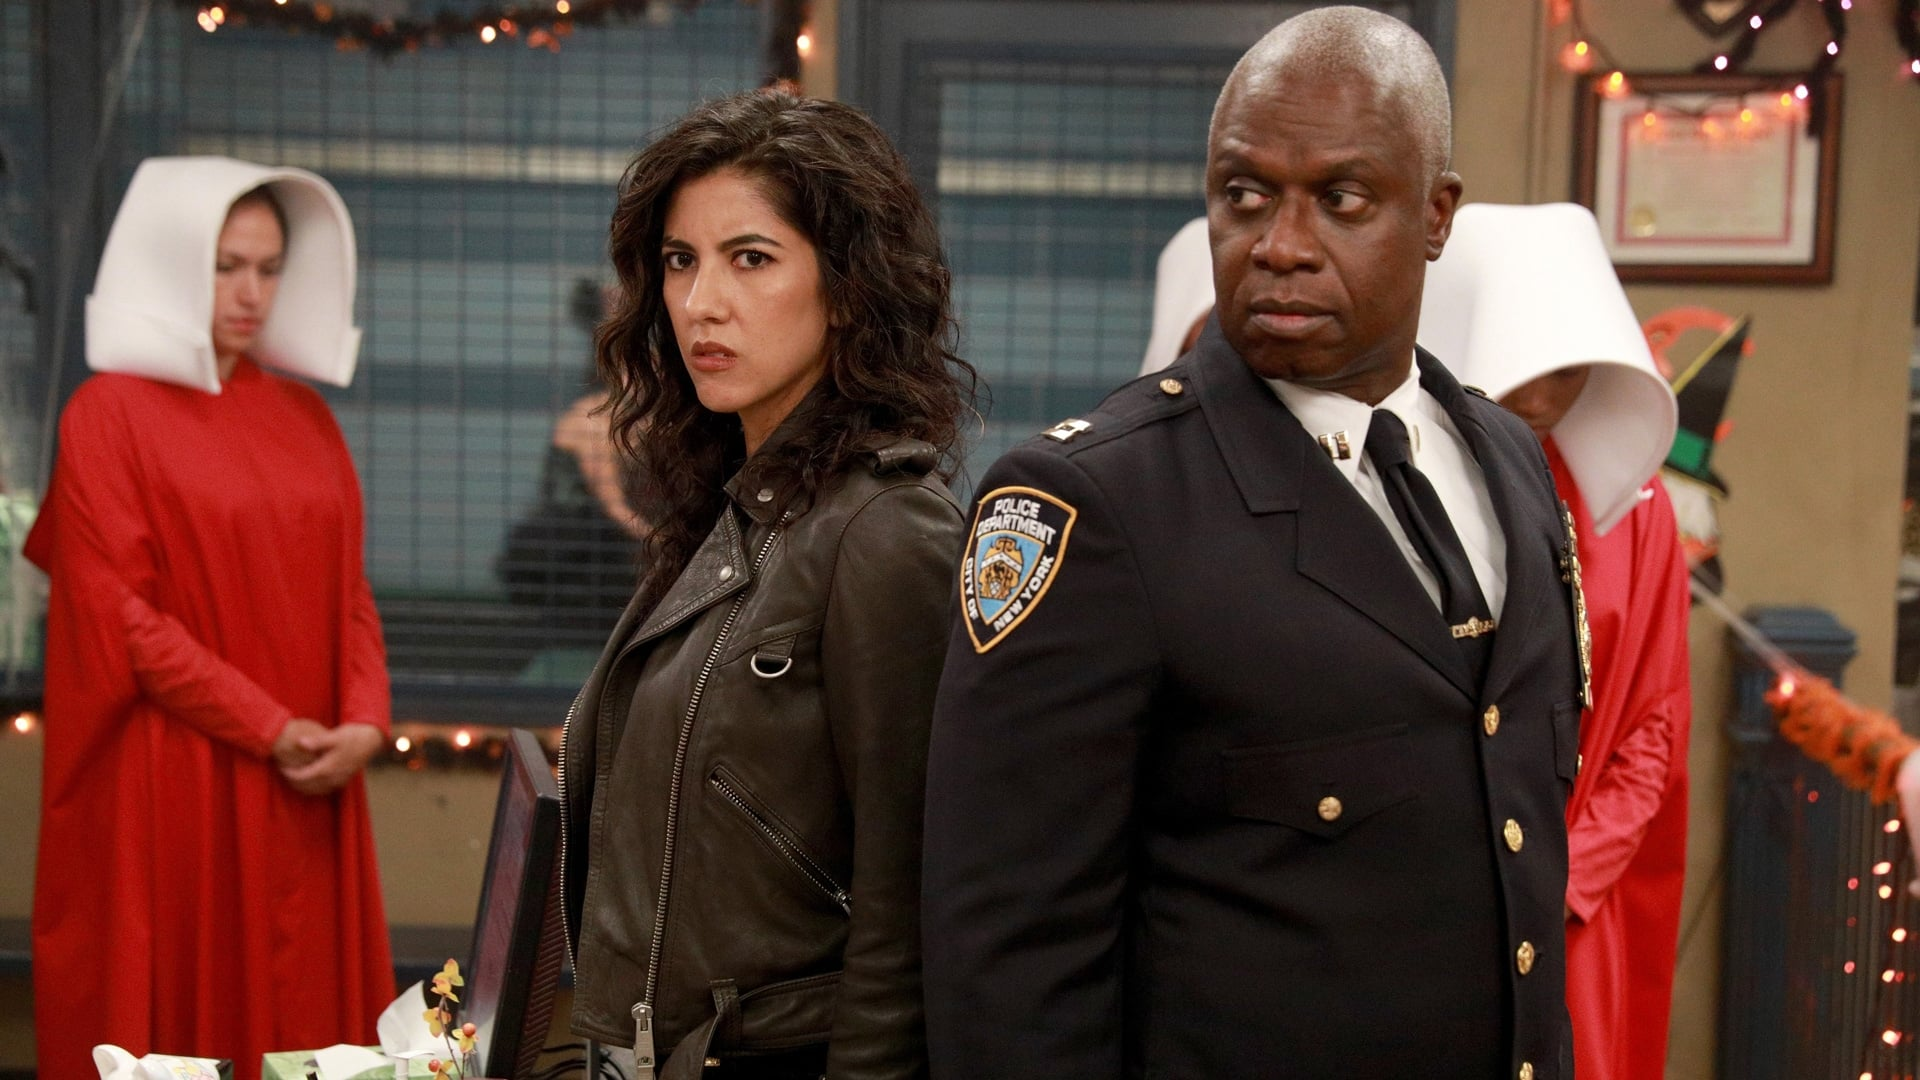 The TV Show Brooklyn Nine Nine episode 21 watchseries.ag offers All episodes can watched live series Brooklyn Nine Nine season 1 episode 21 enjoy the simple and high youtube quality with blueray and hd support .